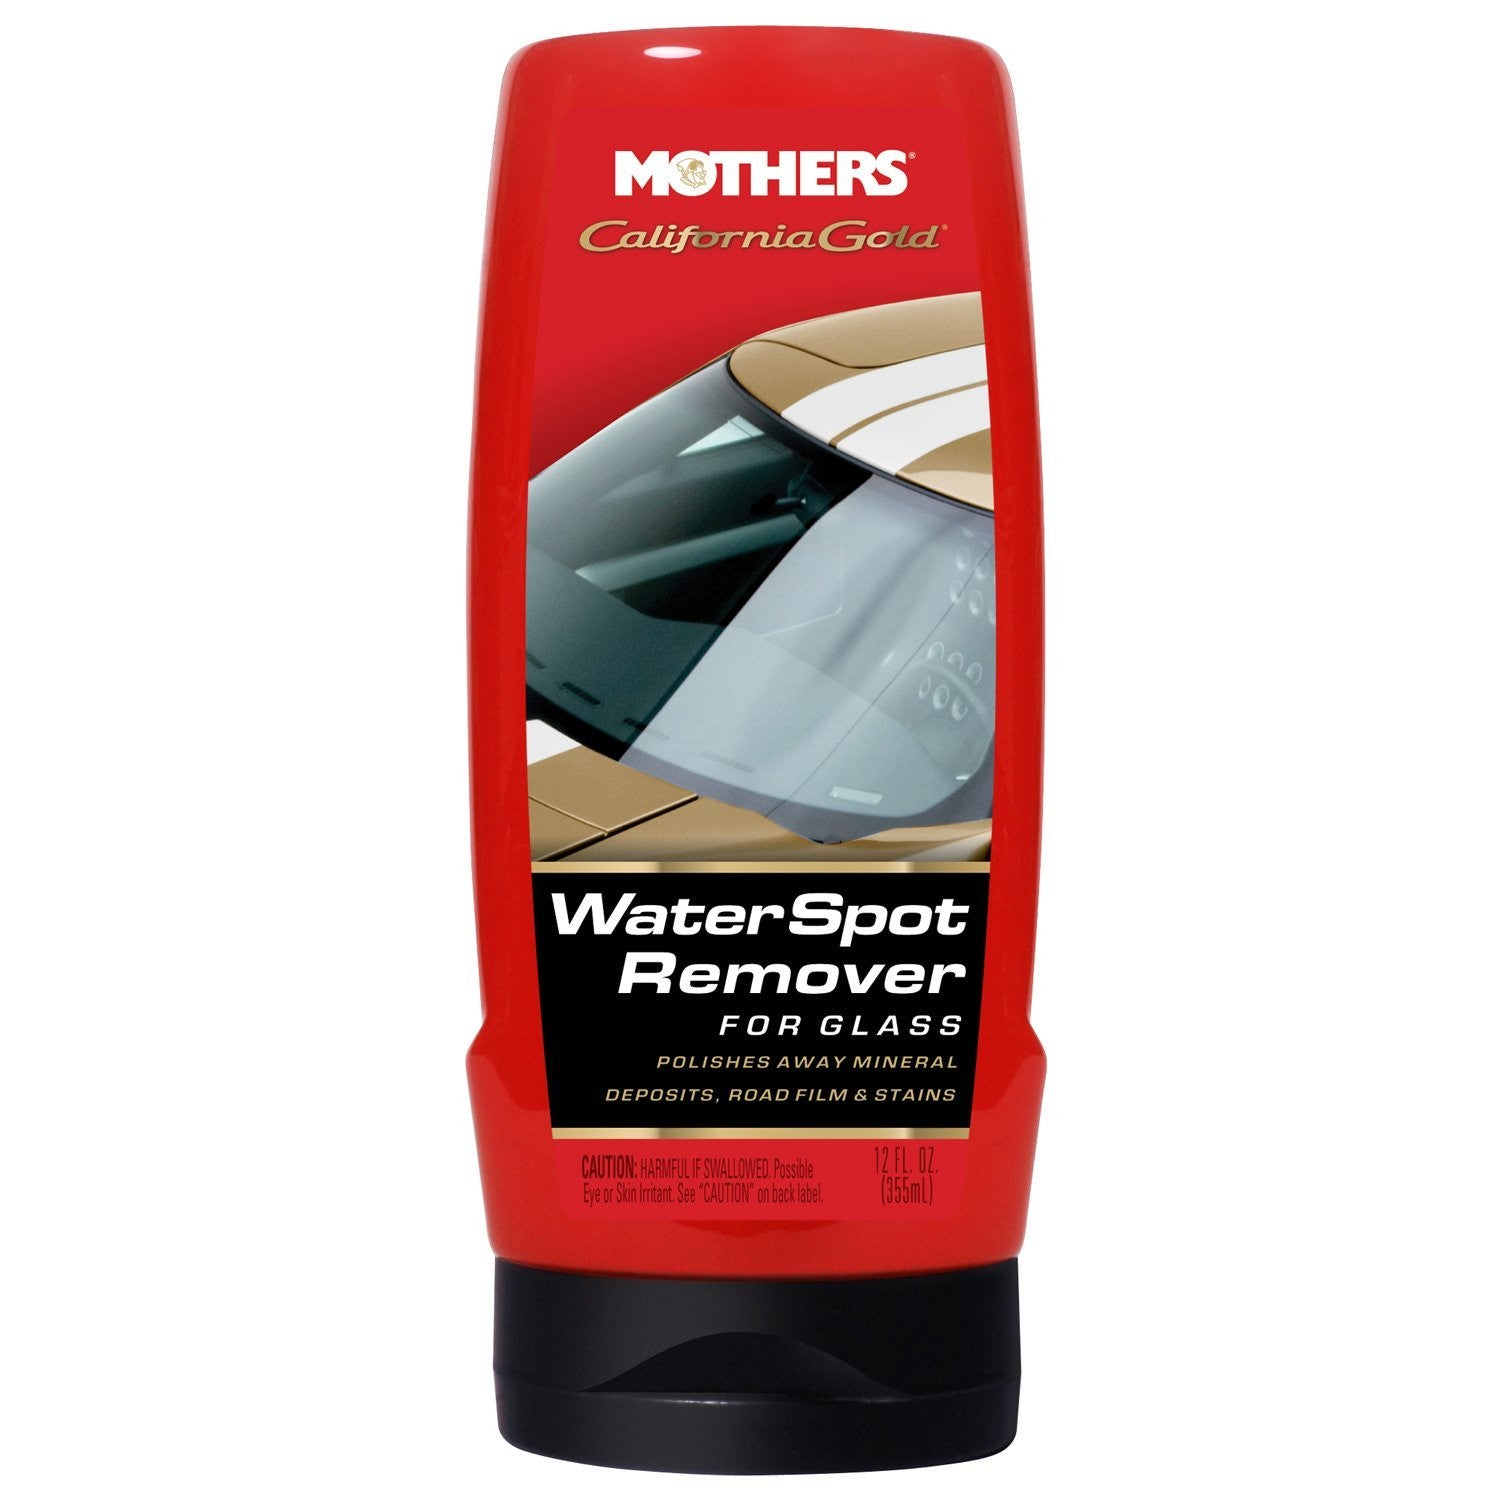 MOTHERS Water Spot Remover for Glass (12 oz)